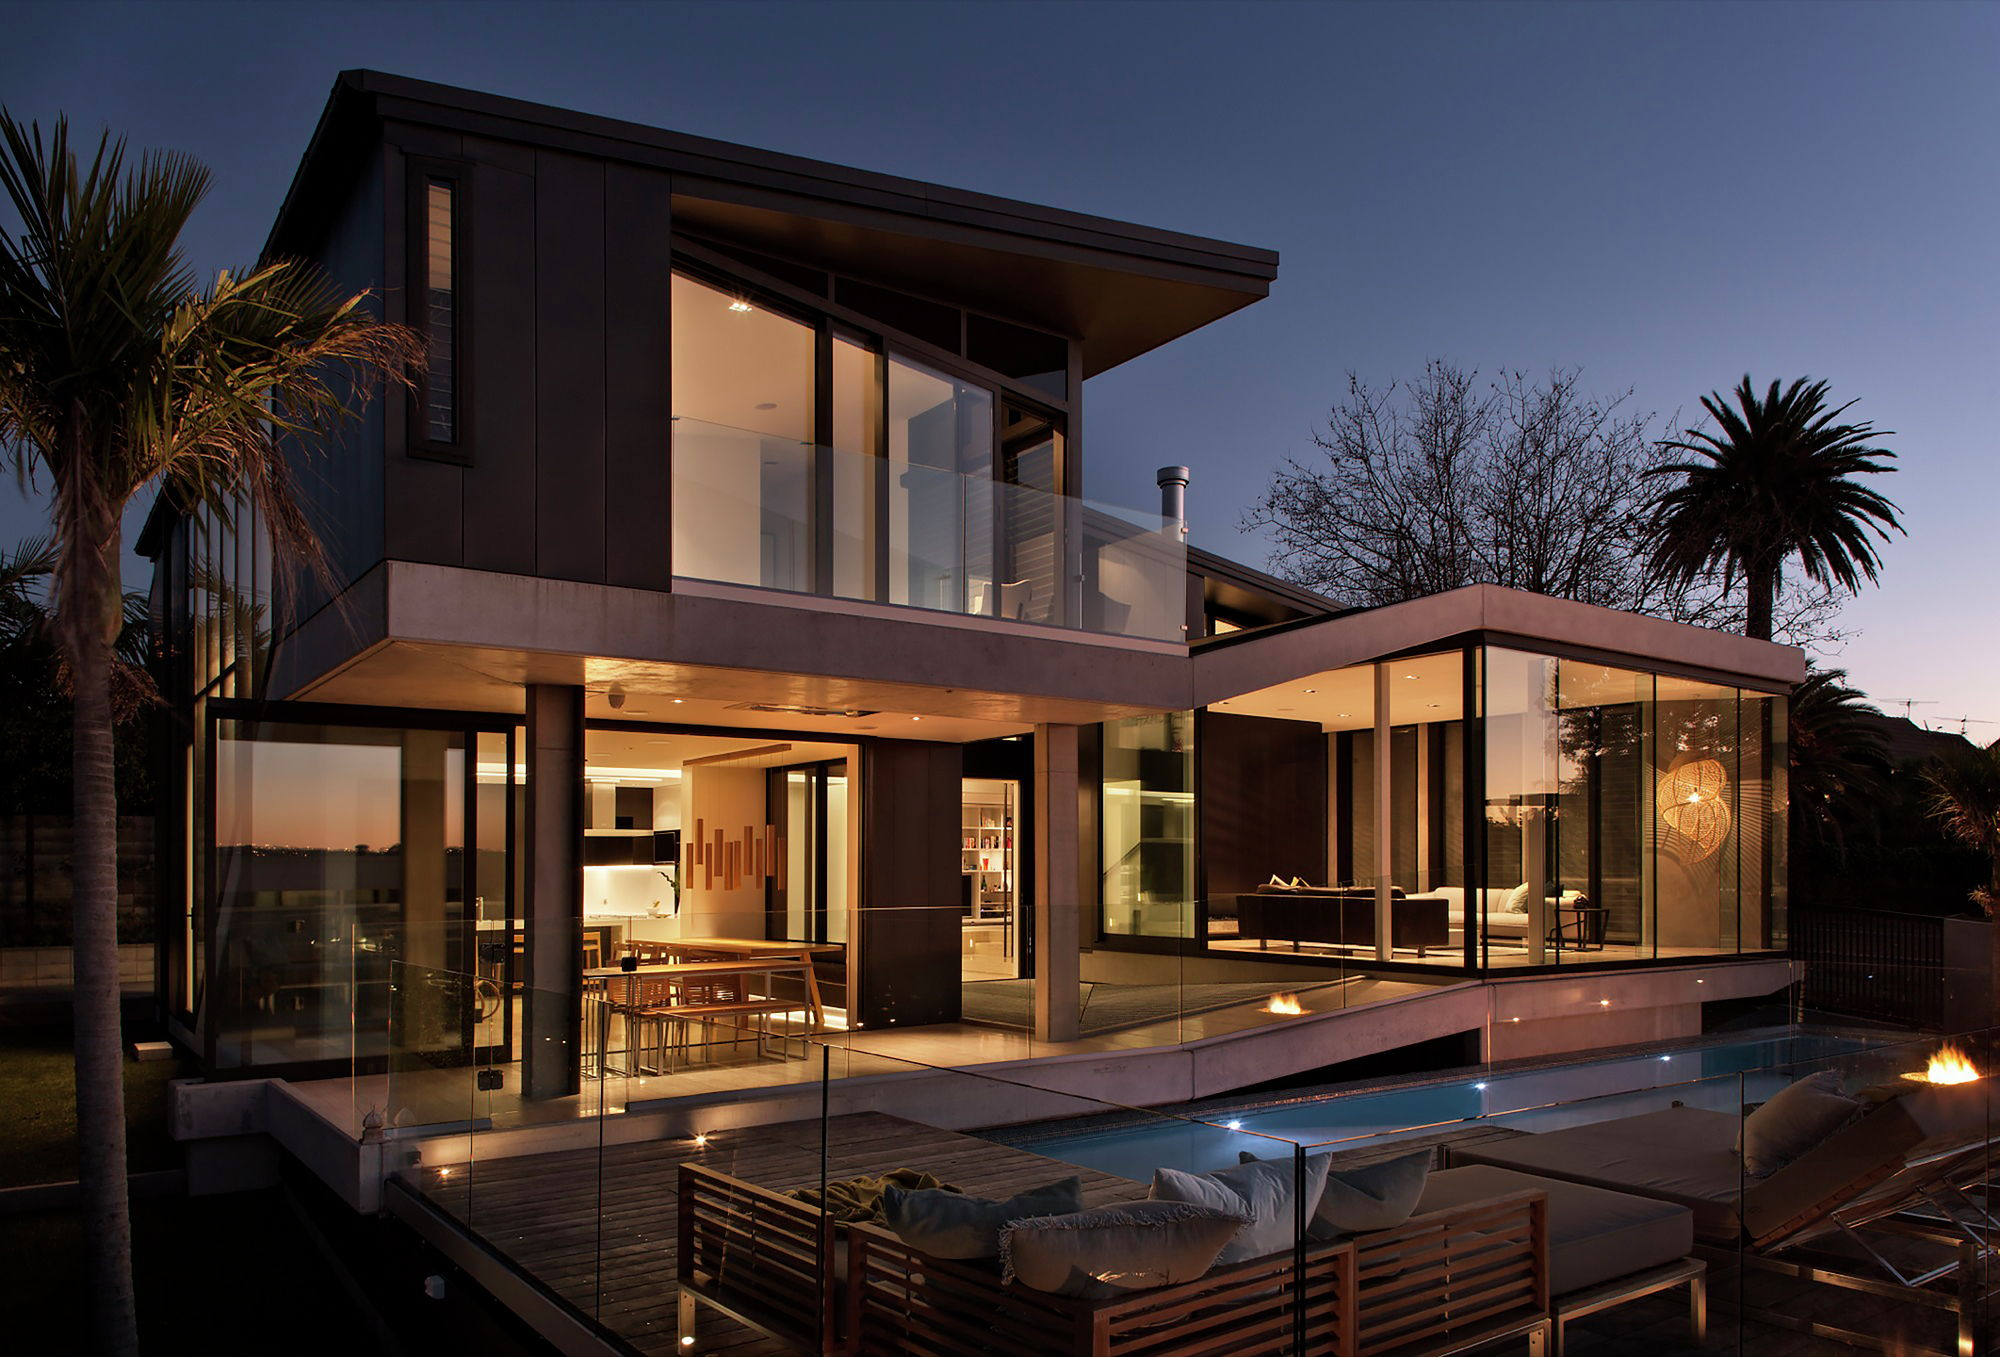 Out of town villa in new zealand upon the project of for Contemporary house designs nz